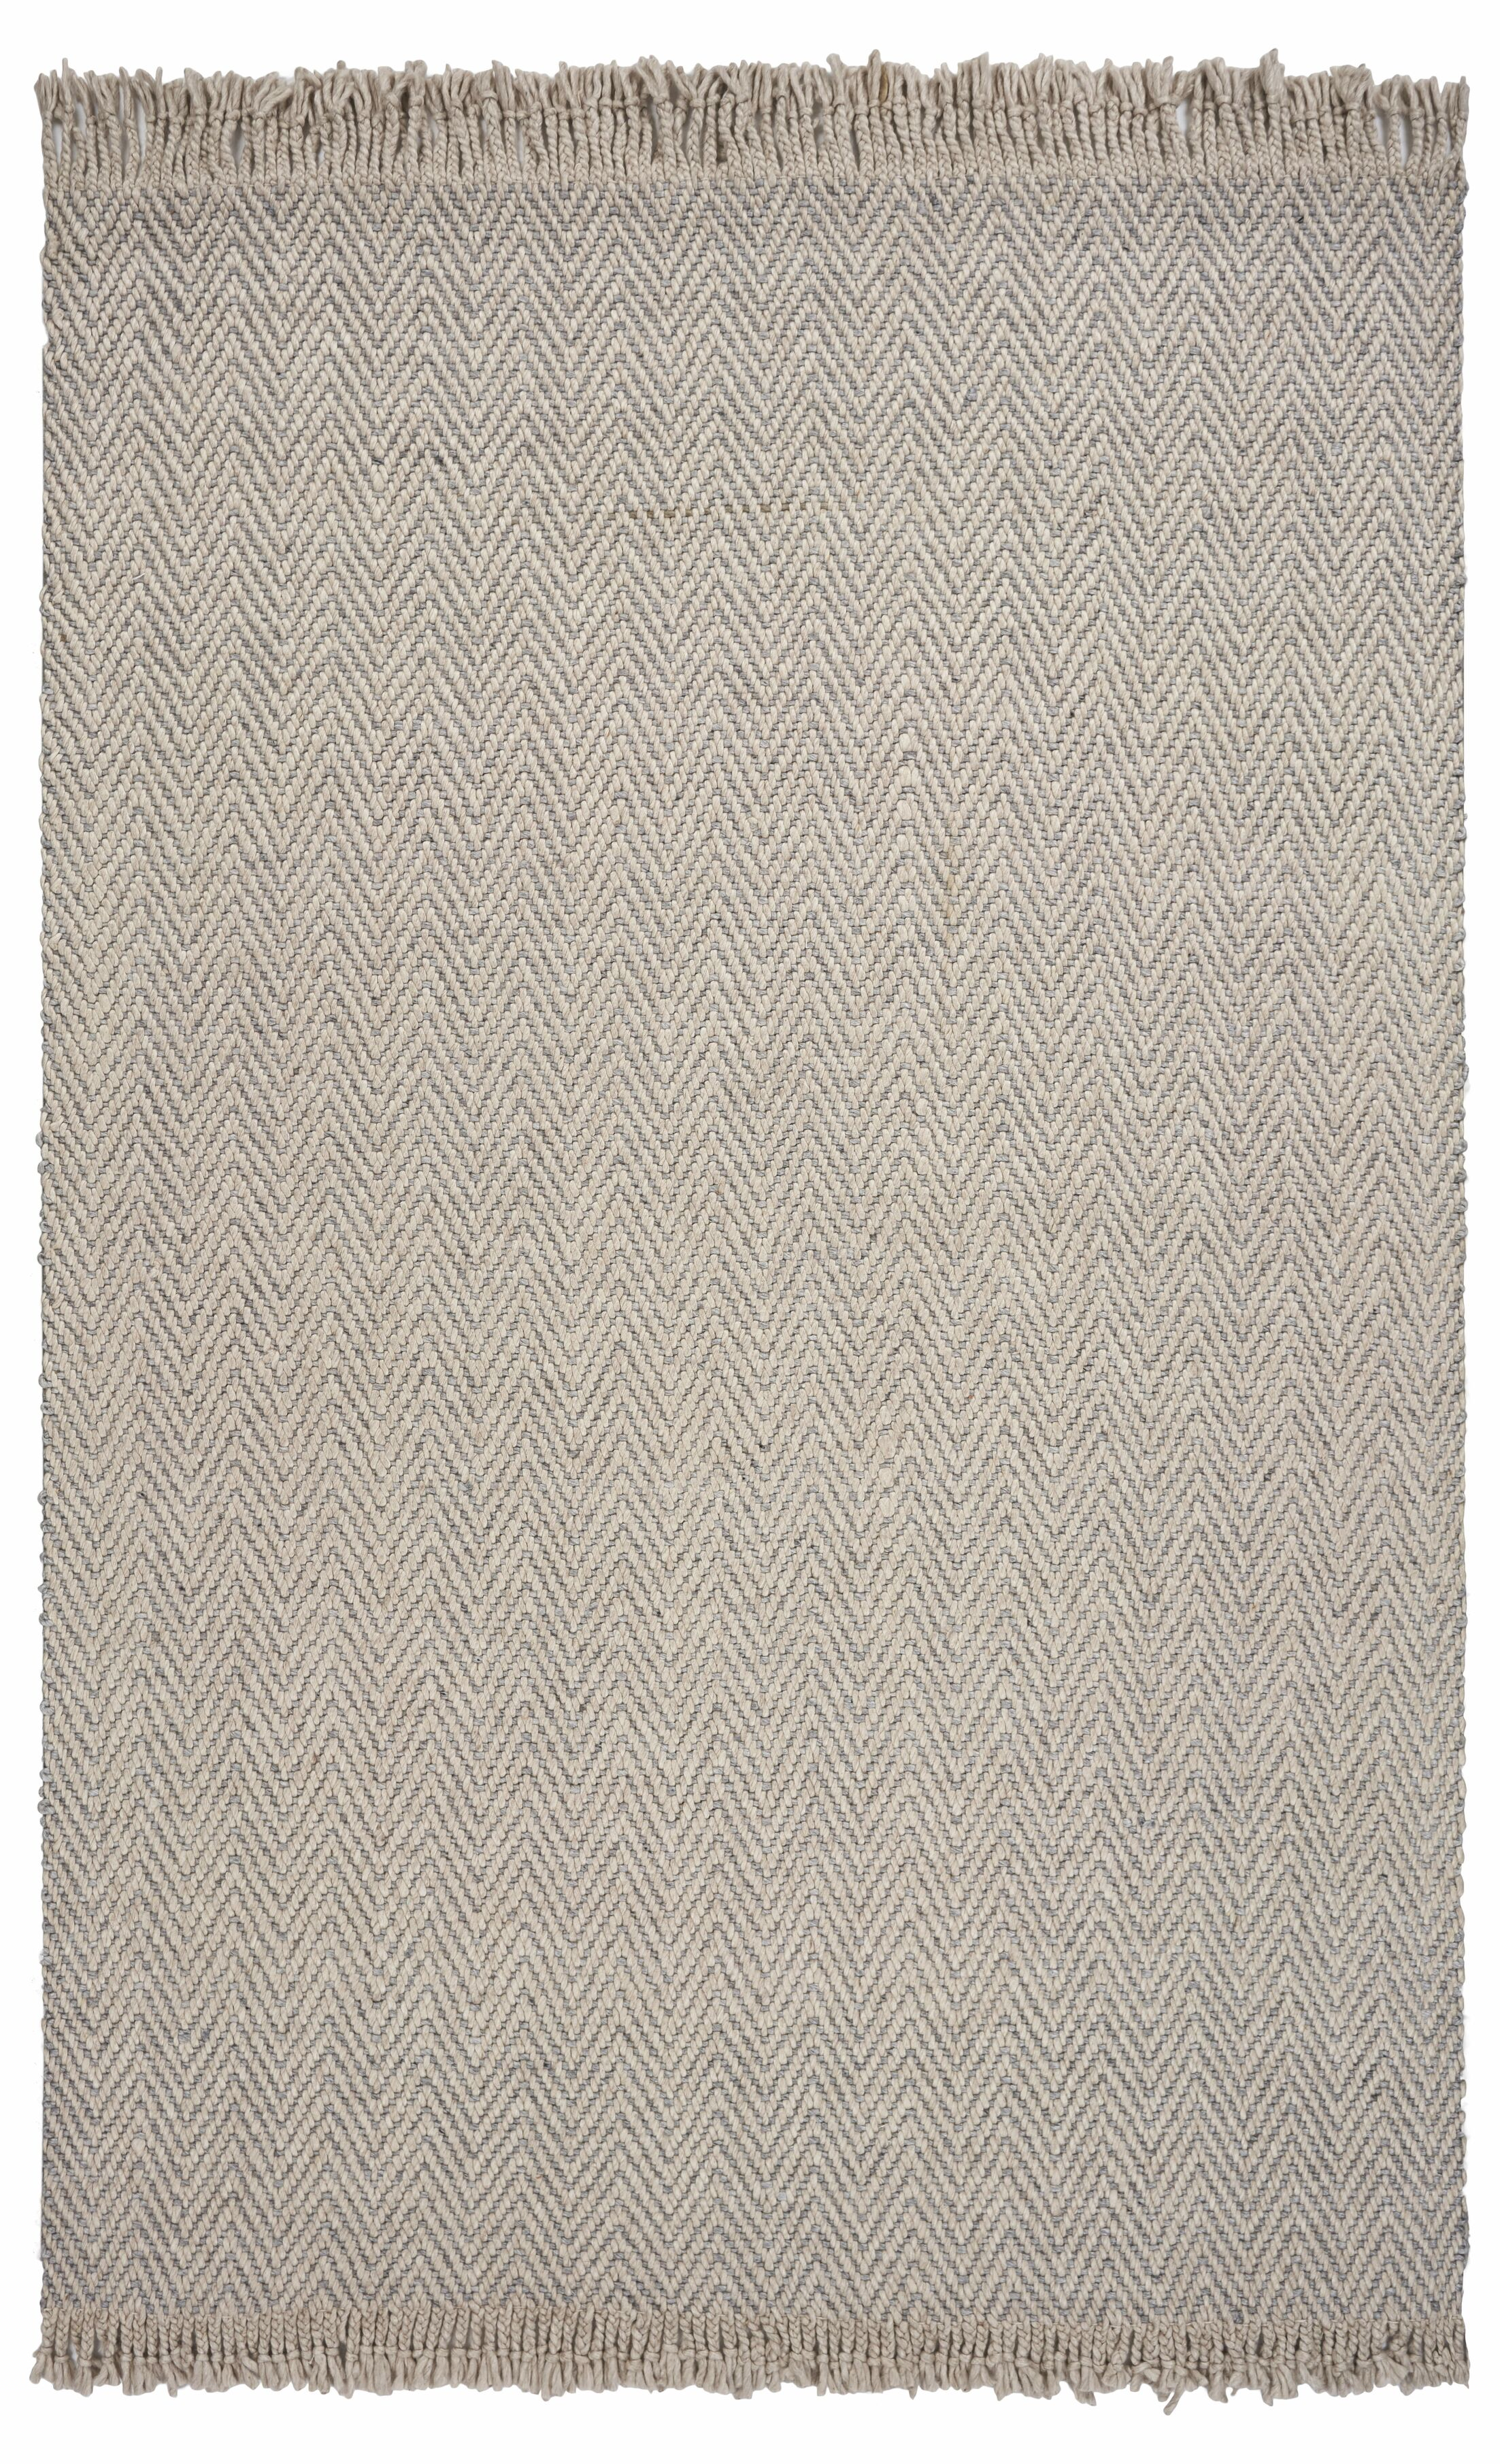 Hogan Herringbone Hand-Woven Wool Oatmeal Area Rug Rug Size: Rectangle 8'6